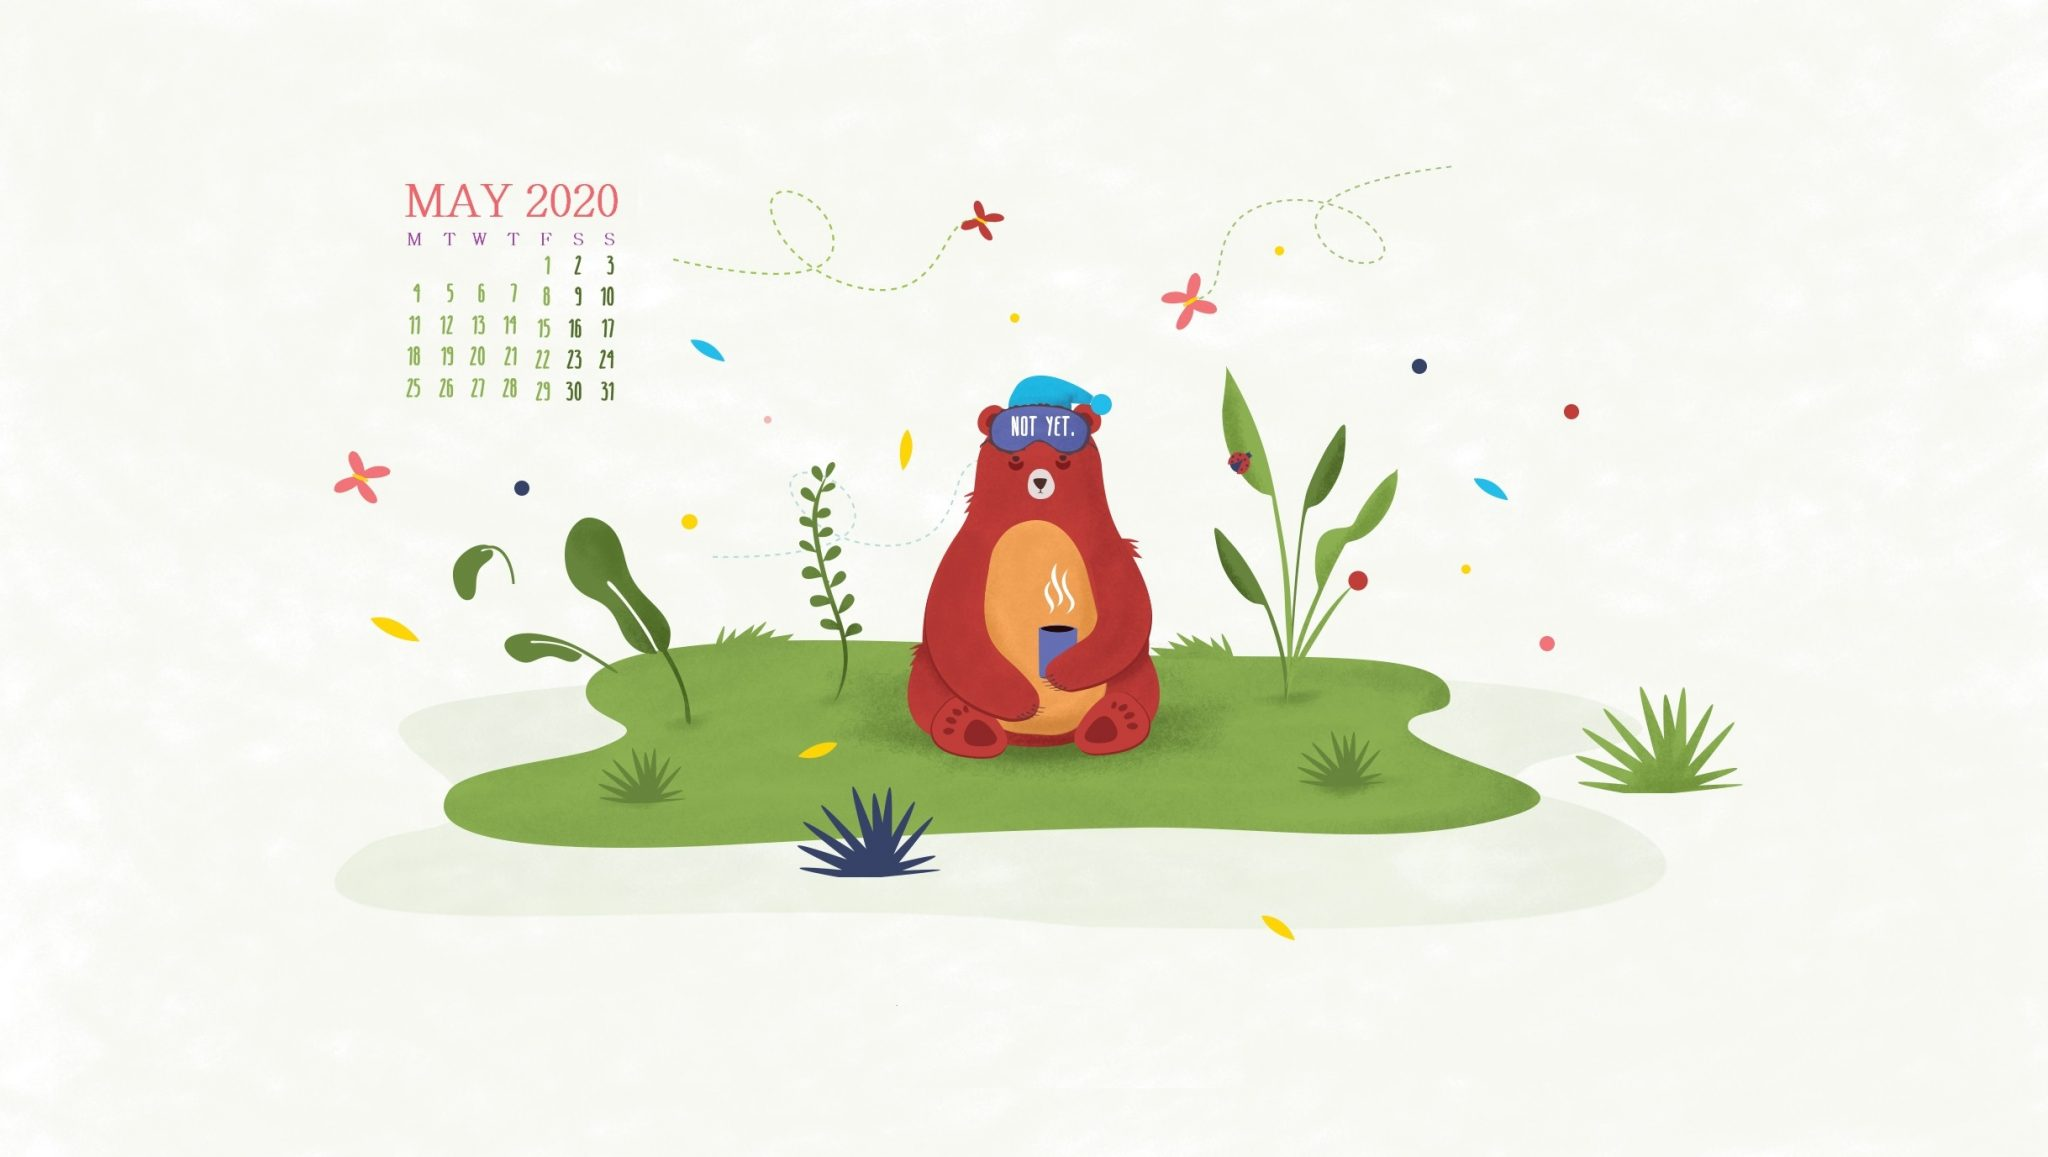 Desktop May 2020 Calendar Wallpaper